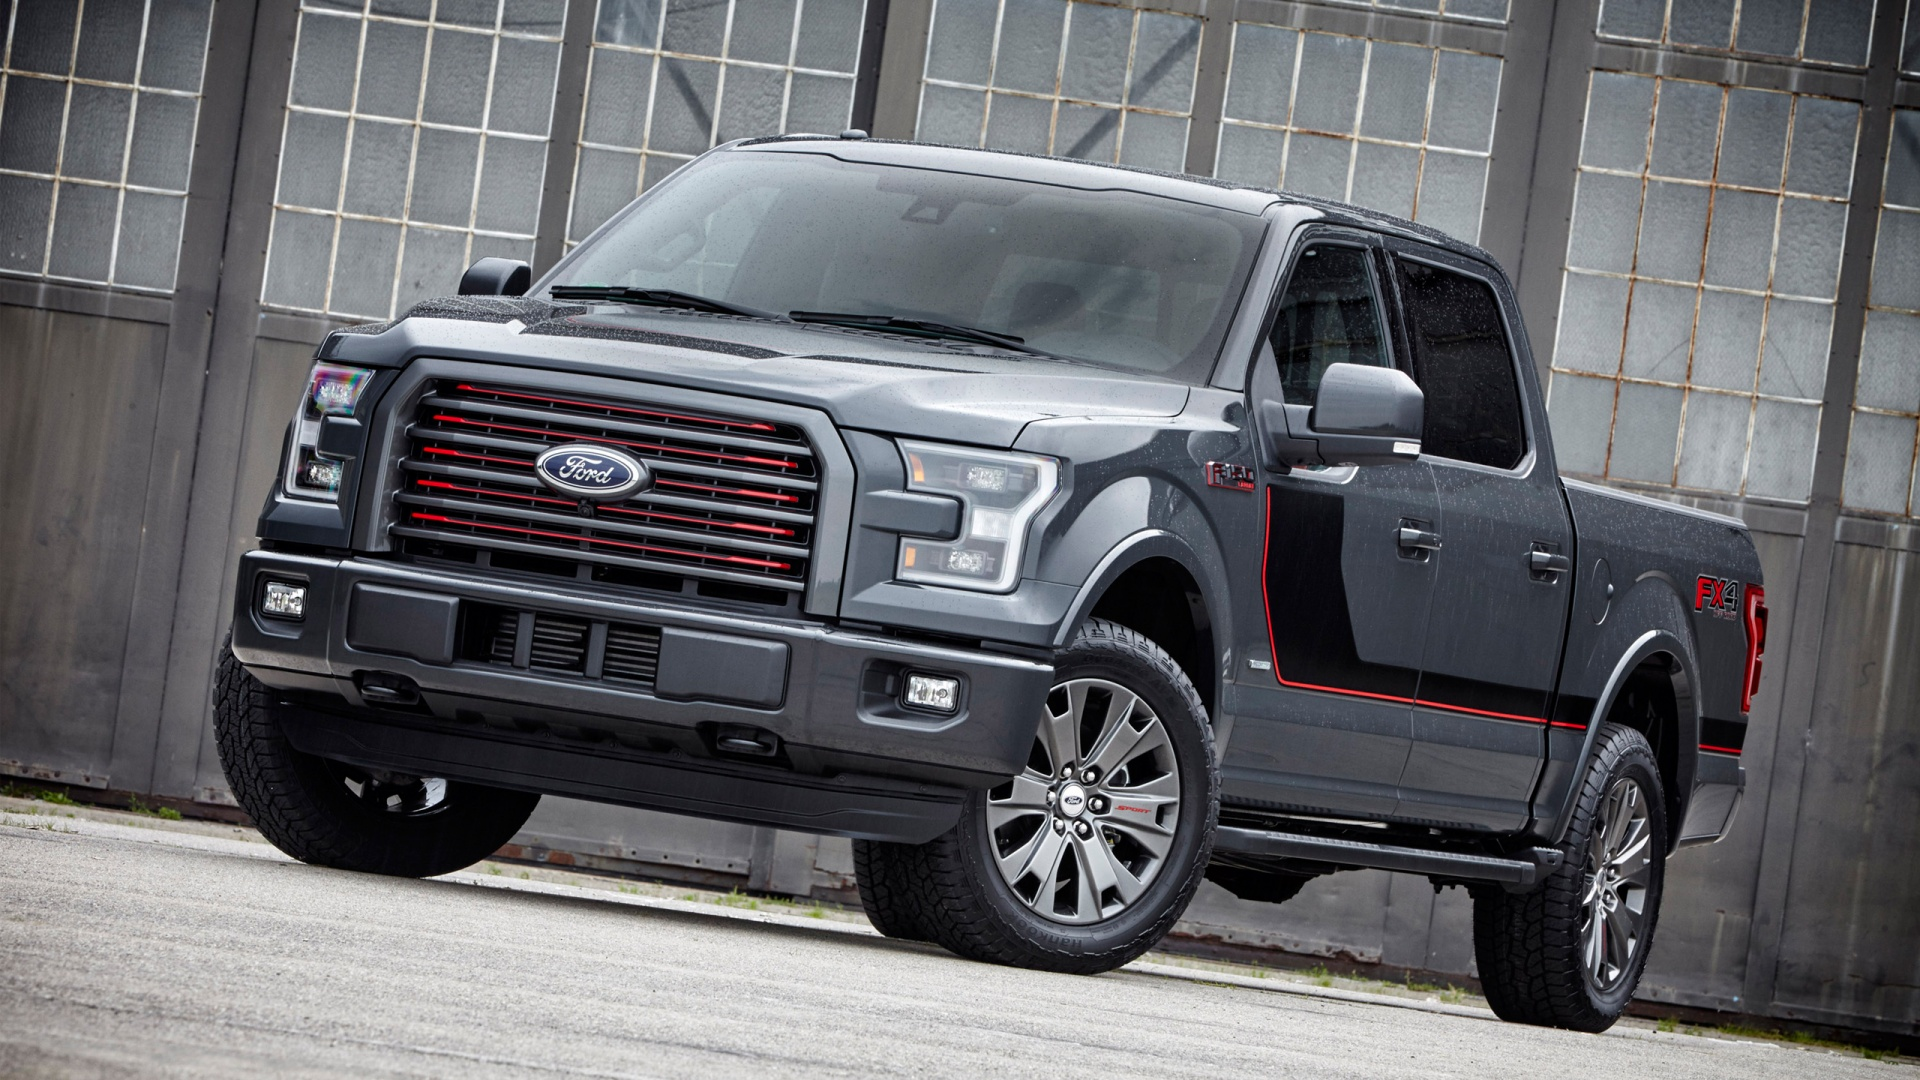 2016 Ford F 150 Lariat Appearance Package Wallpaper HD Car 1920x1080